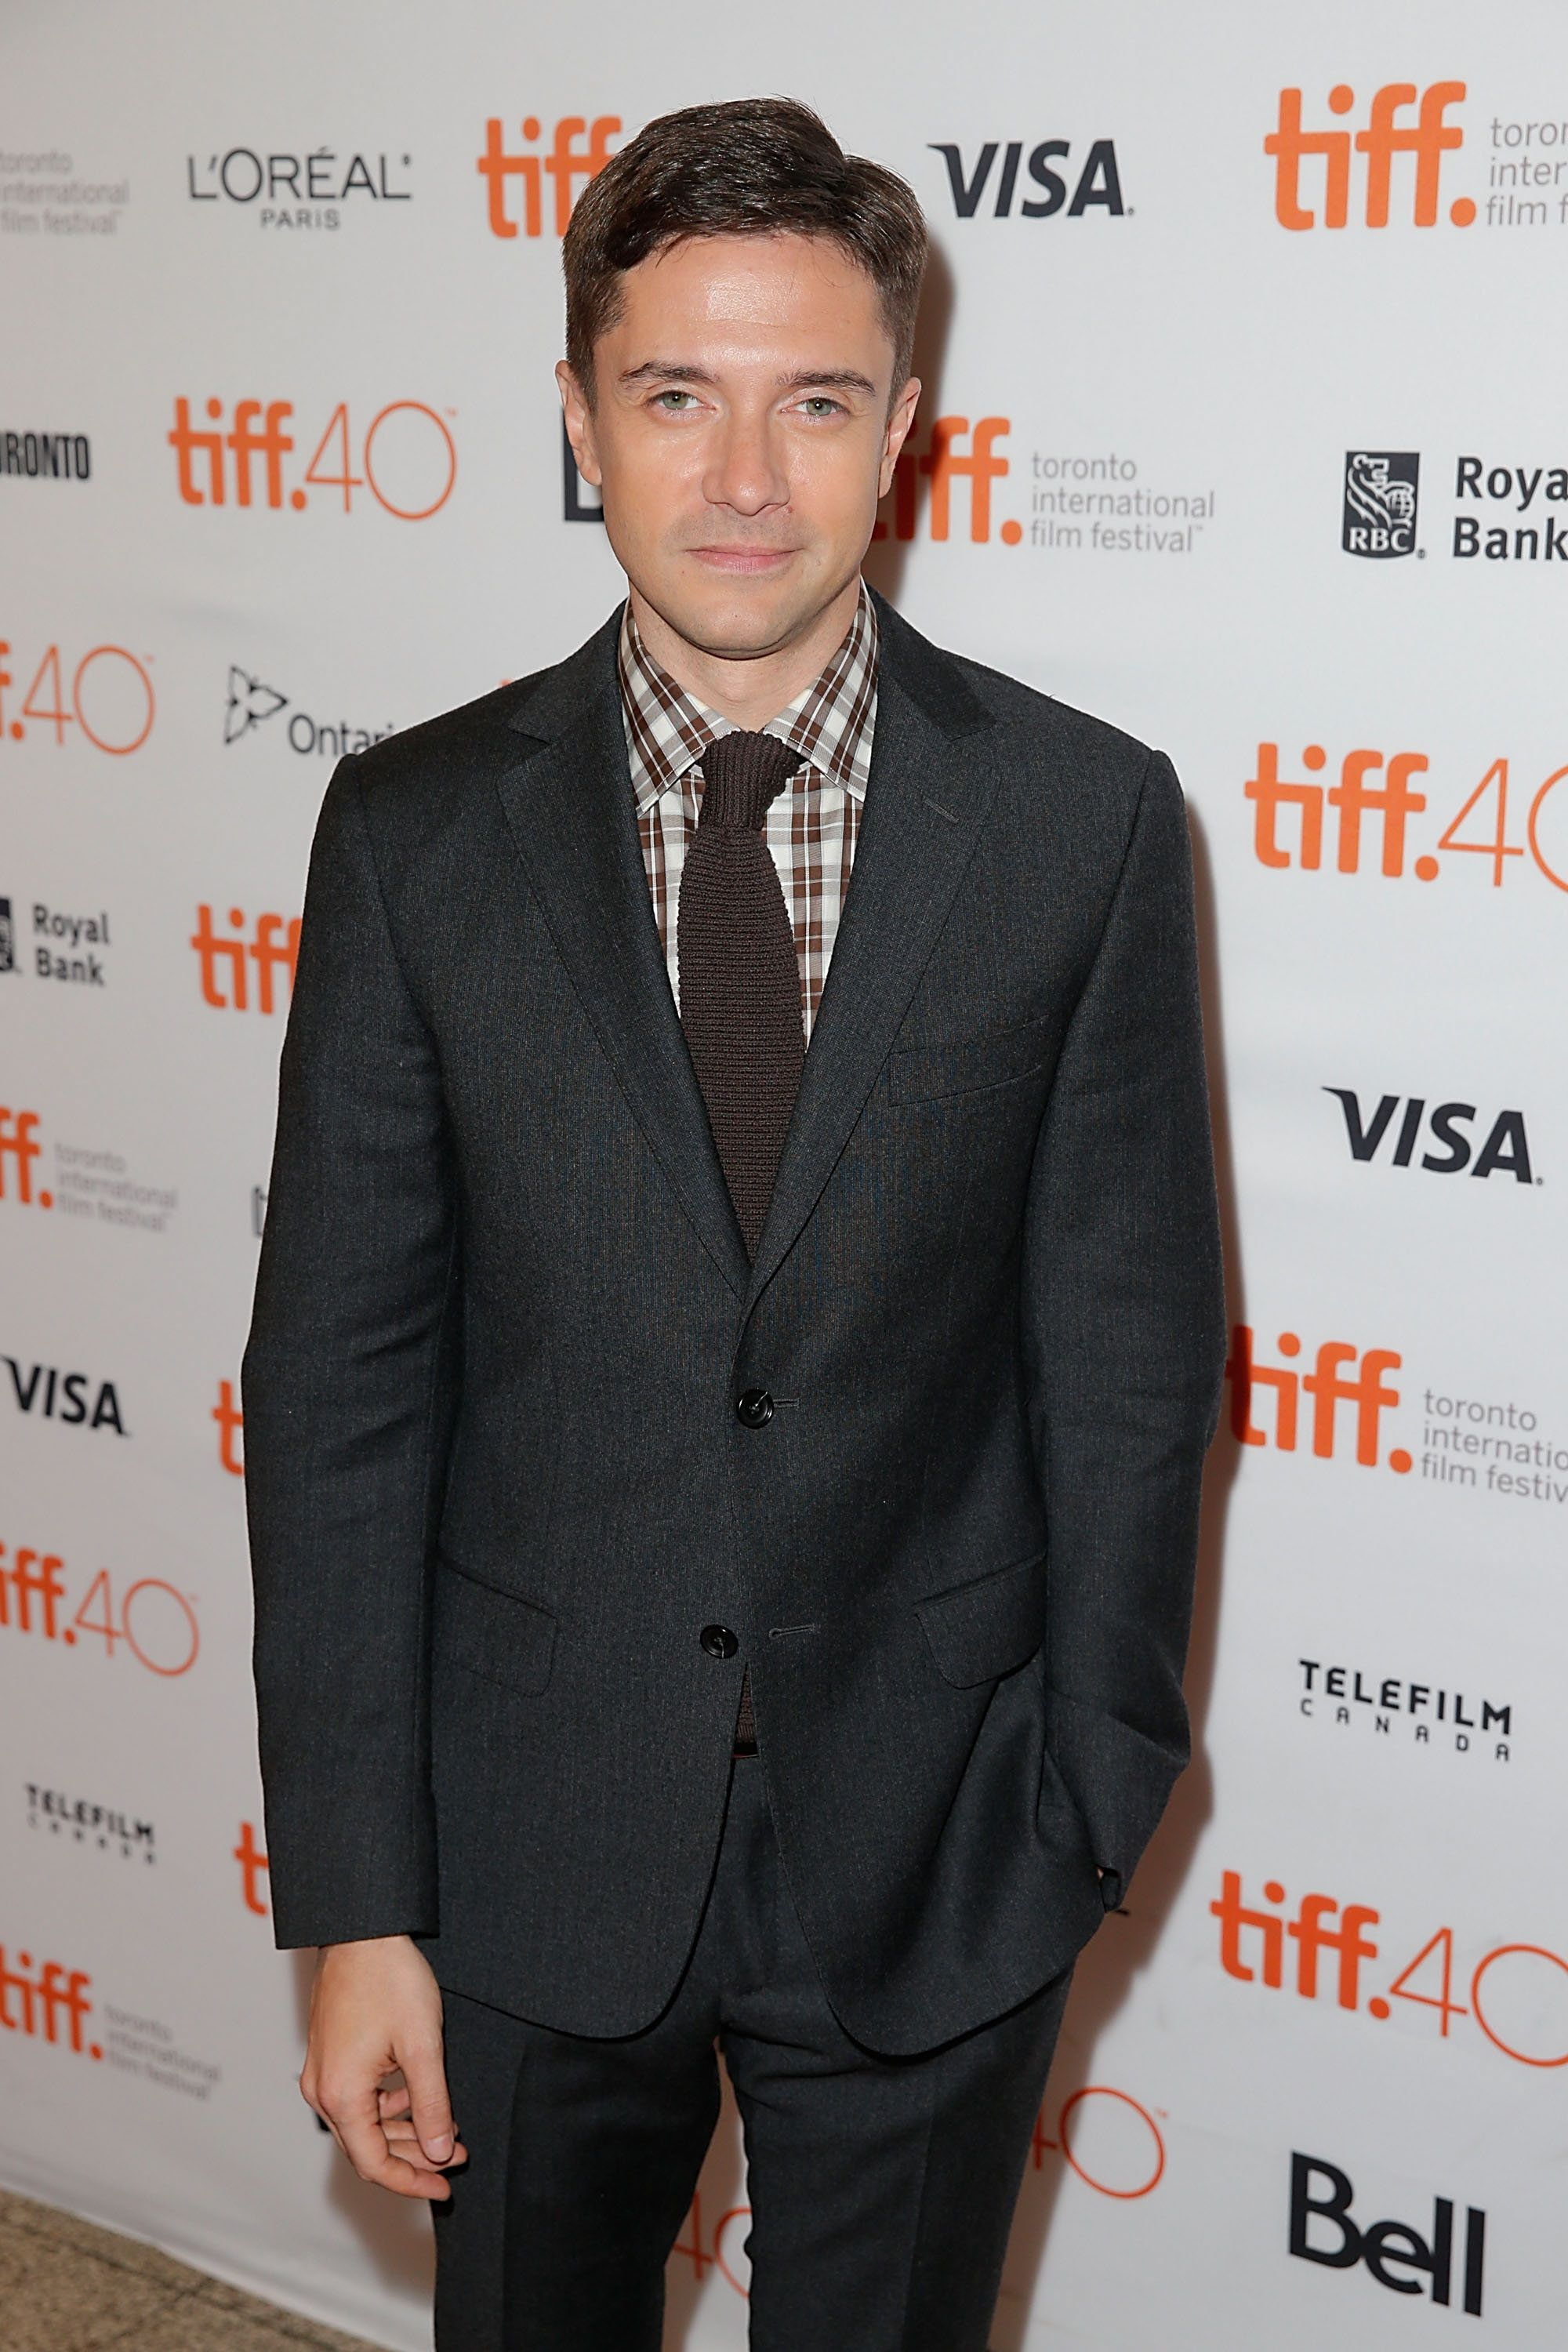 TORONTO, ON - SEPTEMBER 12:  Topher Grace attends 2015 Toronto International Film Festival - 'Truth' Premiere at Winter Garden Theatre on September 12, 2015 in Toronto, Canada.  (Photo by Joe Scarnici/WireImage)